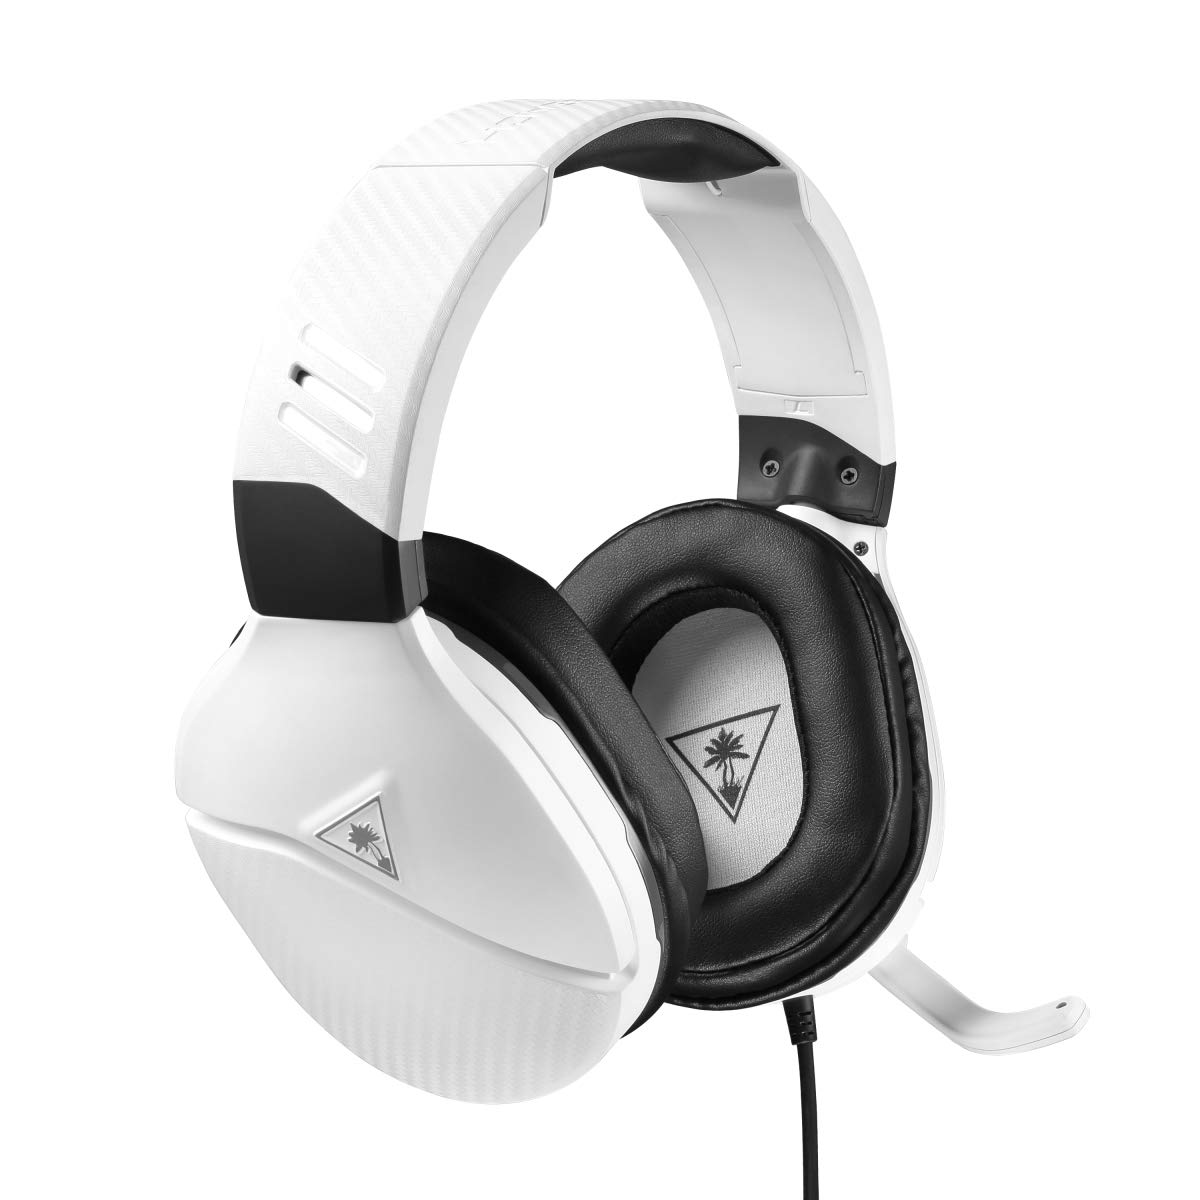 Turtle Beach Recon 200 White Amplified Gaming Headset for Xbox One, PS4 and PS4 Pro by Turtle Beach